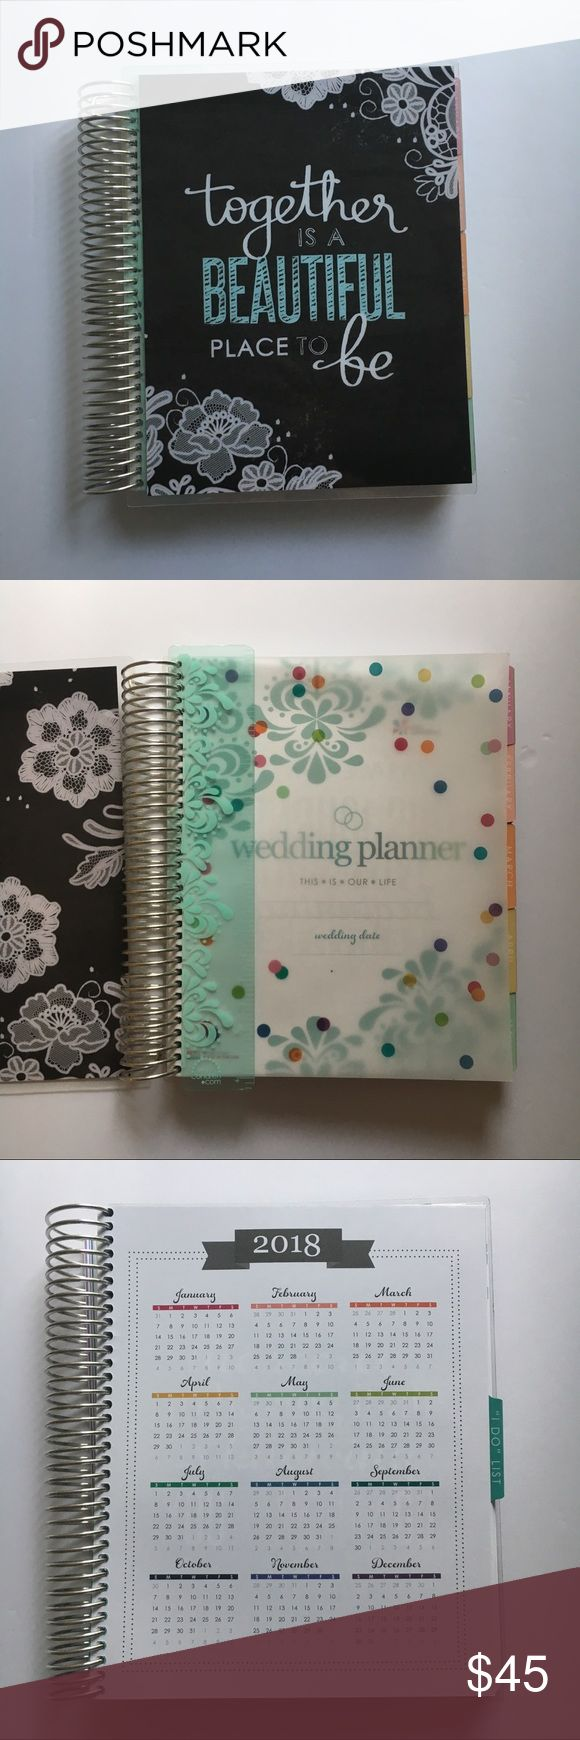 """ERIN CONDREN Wedding Planner💍👰🏼💐💕 There's so much to do before you say """"I Do!""""  12 month calendar  Monthly checklists to keep you on track 70-page notebook for notes and lists  Lists include: wedding tips, monthly checklists, wedding party, vows, photography & music, budget checklist, guest list, cake & flowers, seating arrangement, honeymoon, contact list**, food & bar menu, monthly calendar & notes pages.  **Vendor contact list is partially written on. Can easily be whited out. Also…"""